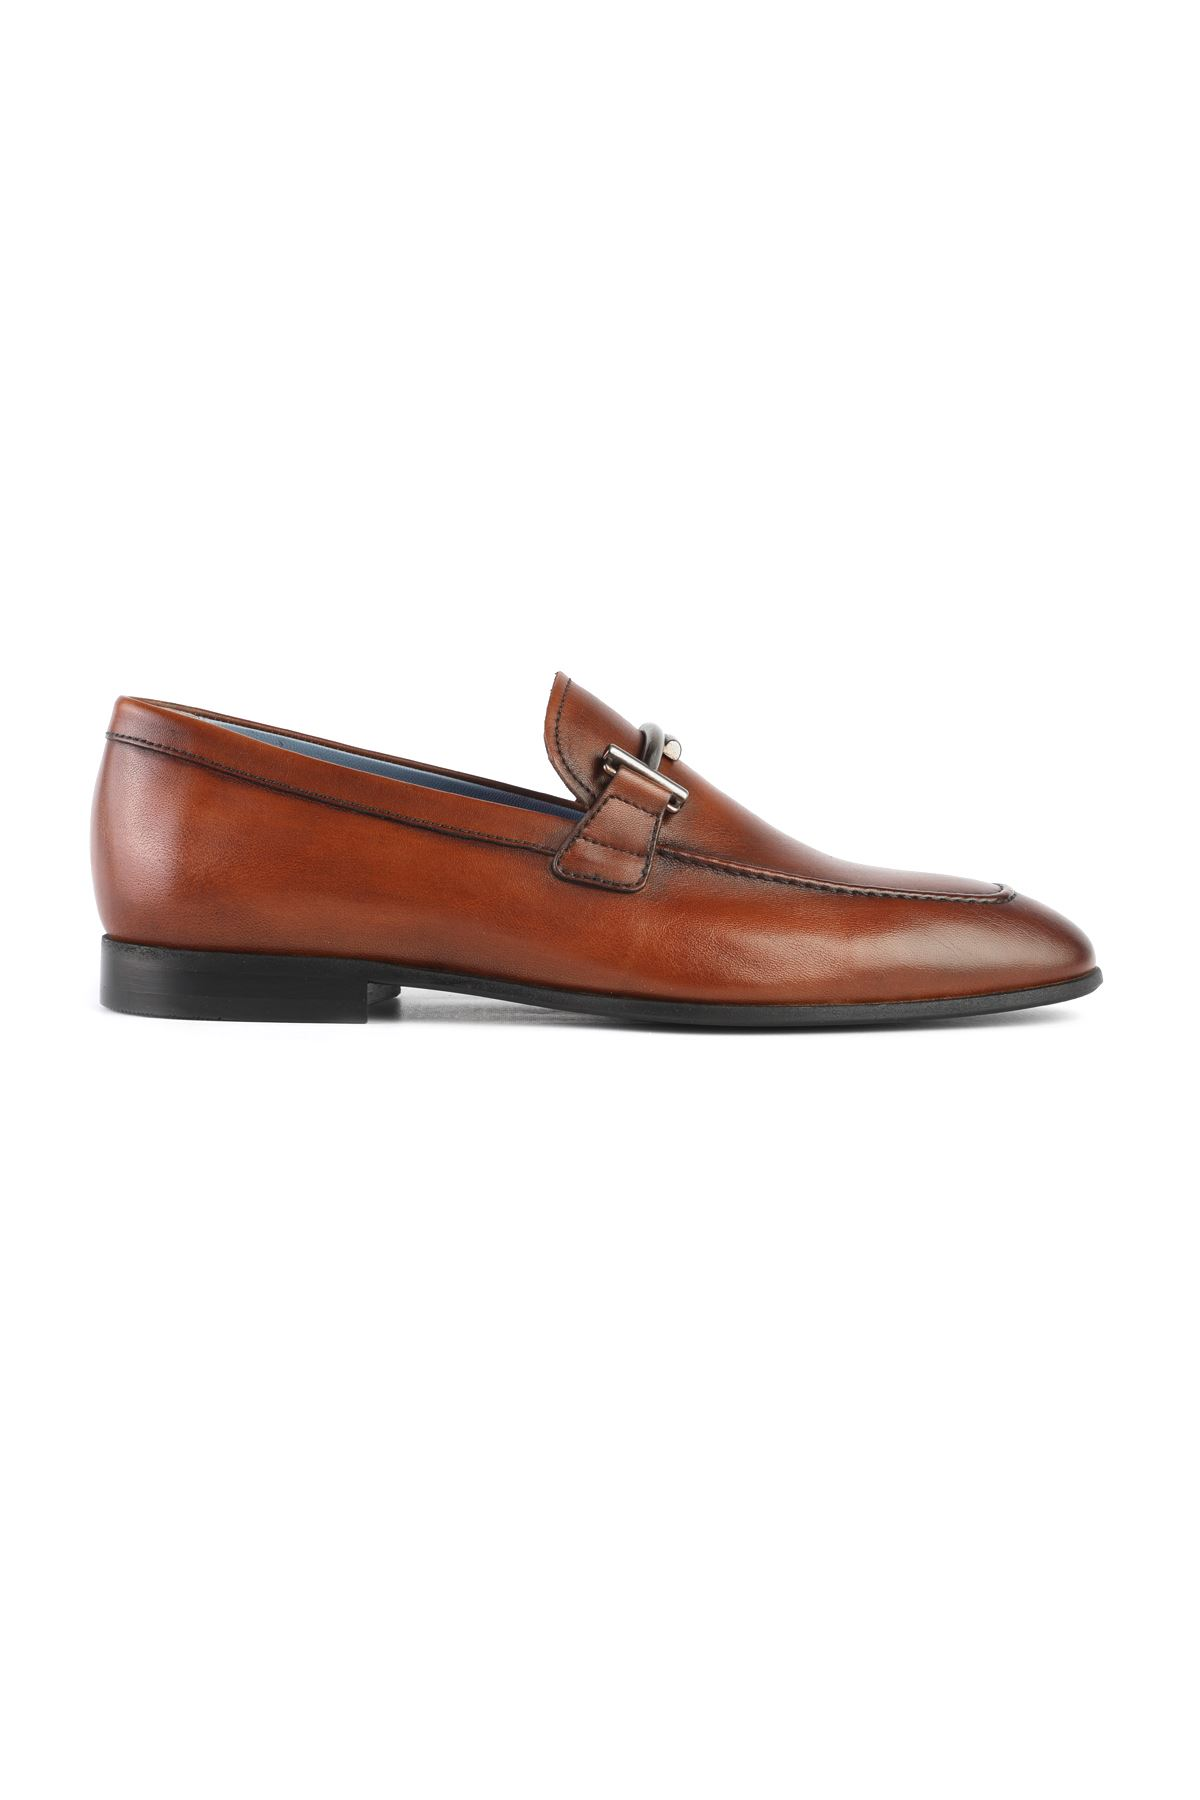 Libero 3270 Tan Loafer Shoes